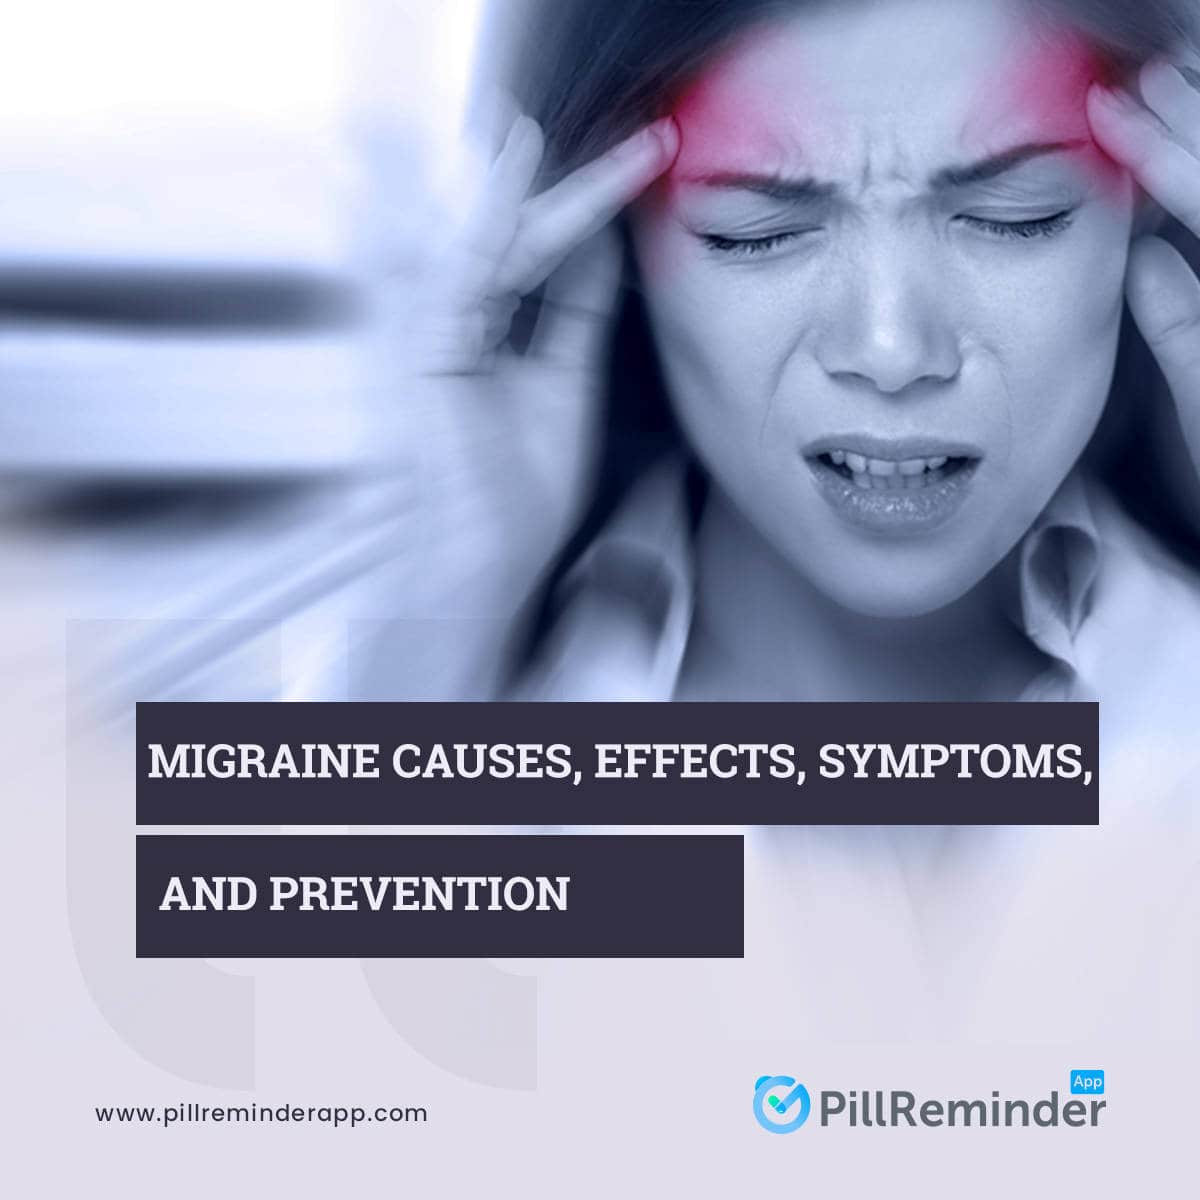 Migraine Causes, Effects, Symptoms, And Prevention